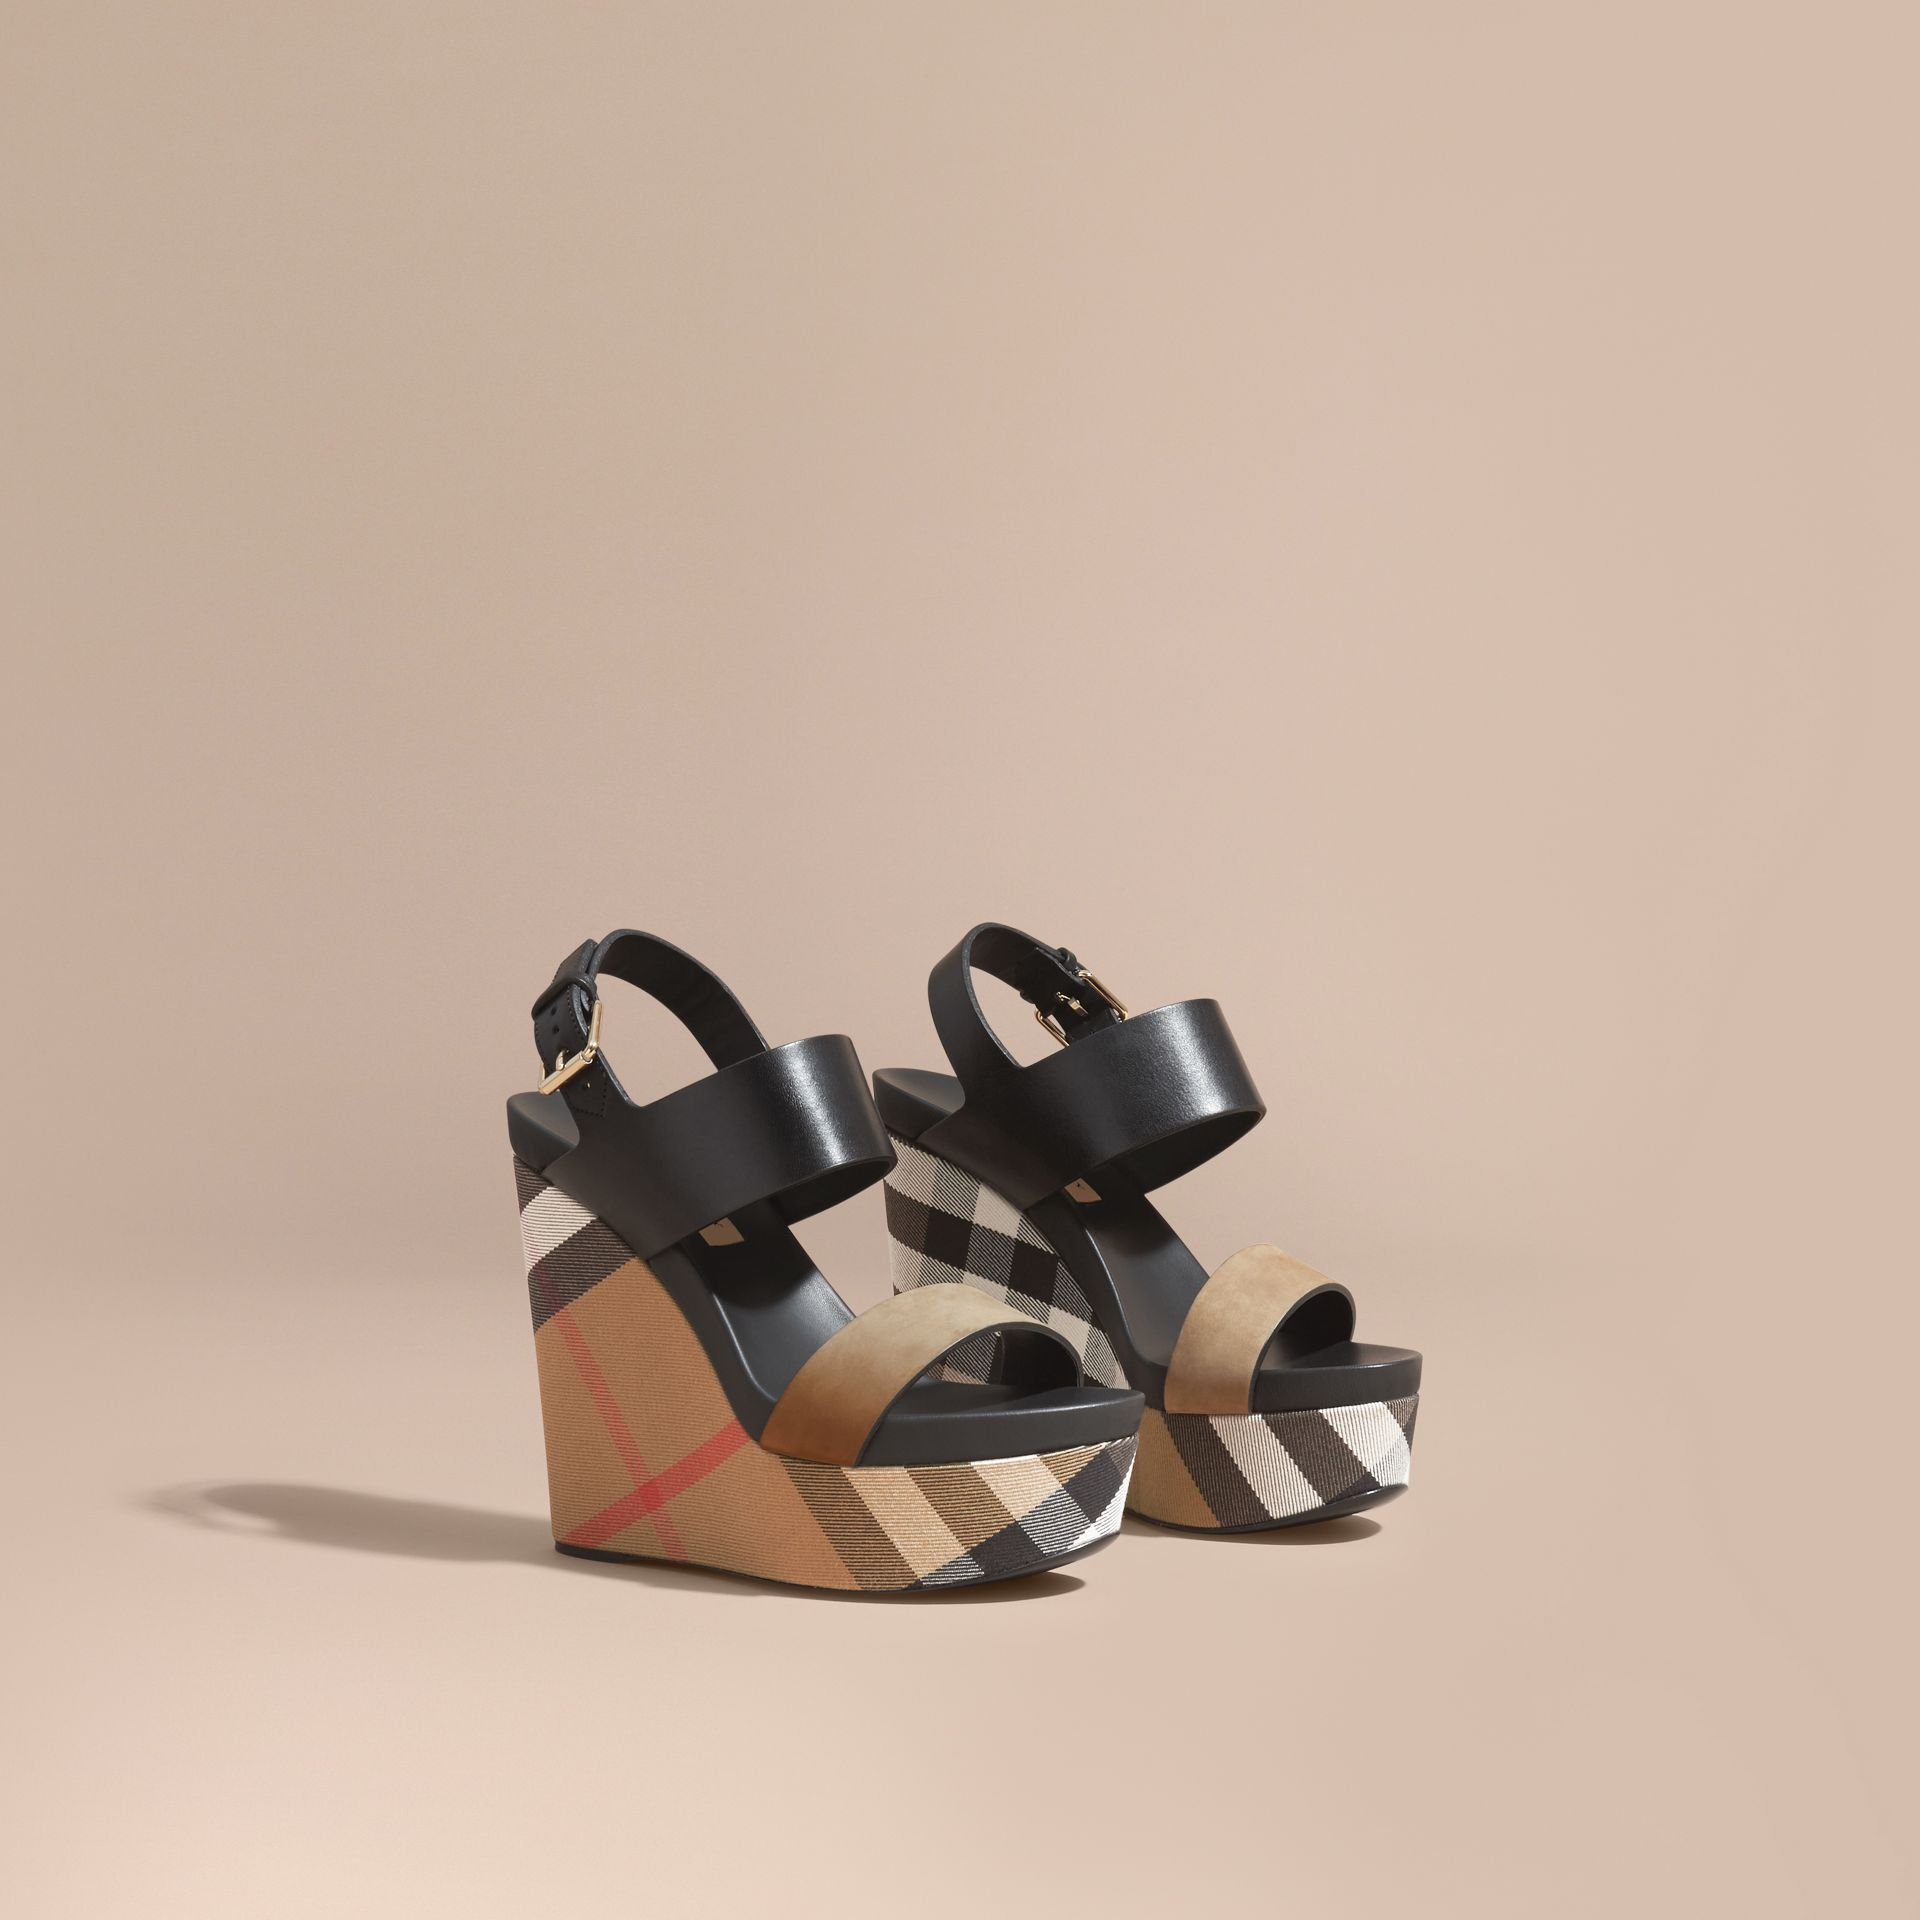 House Check Leather and Calf Suede Platform Wedges in Dark Heather Melange - Women | Burberry - gallery image 1